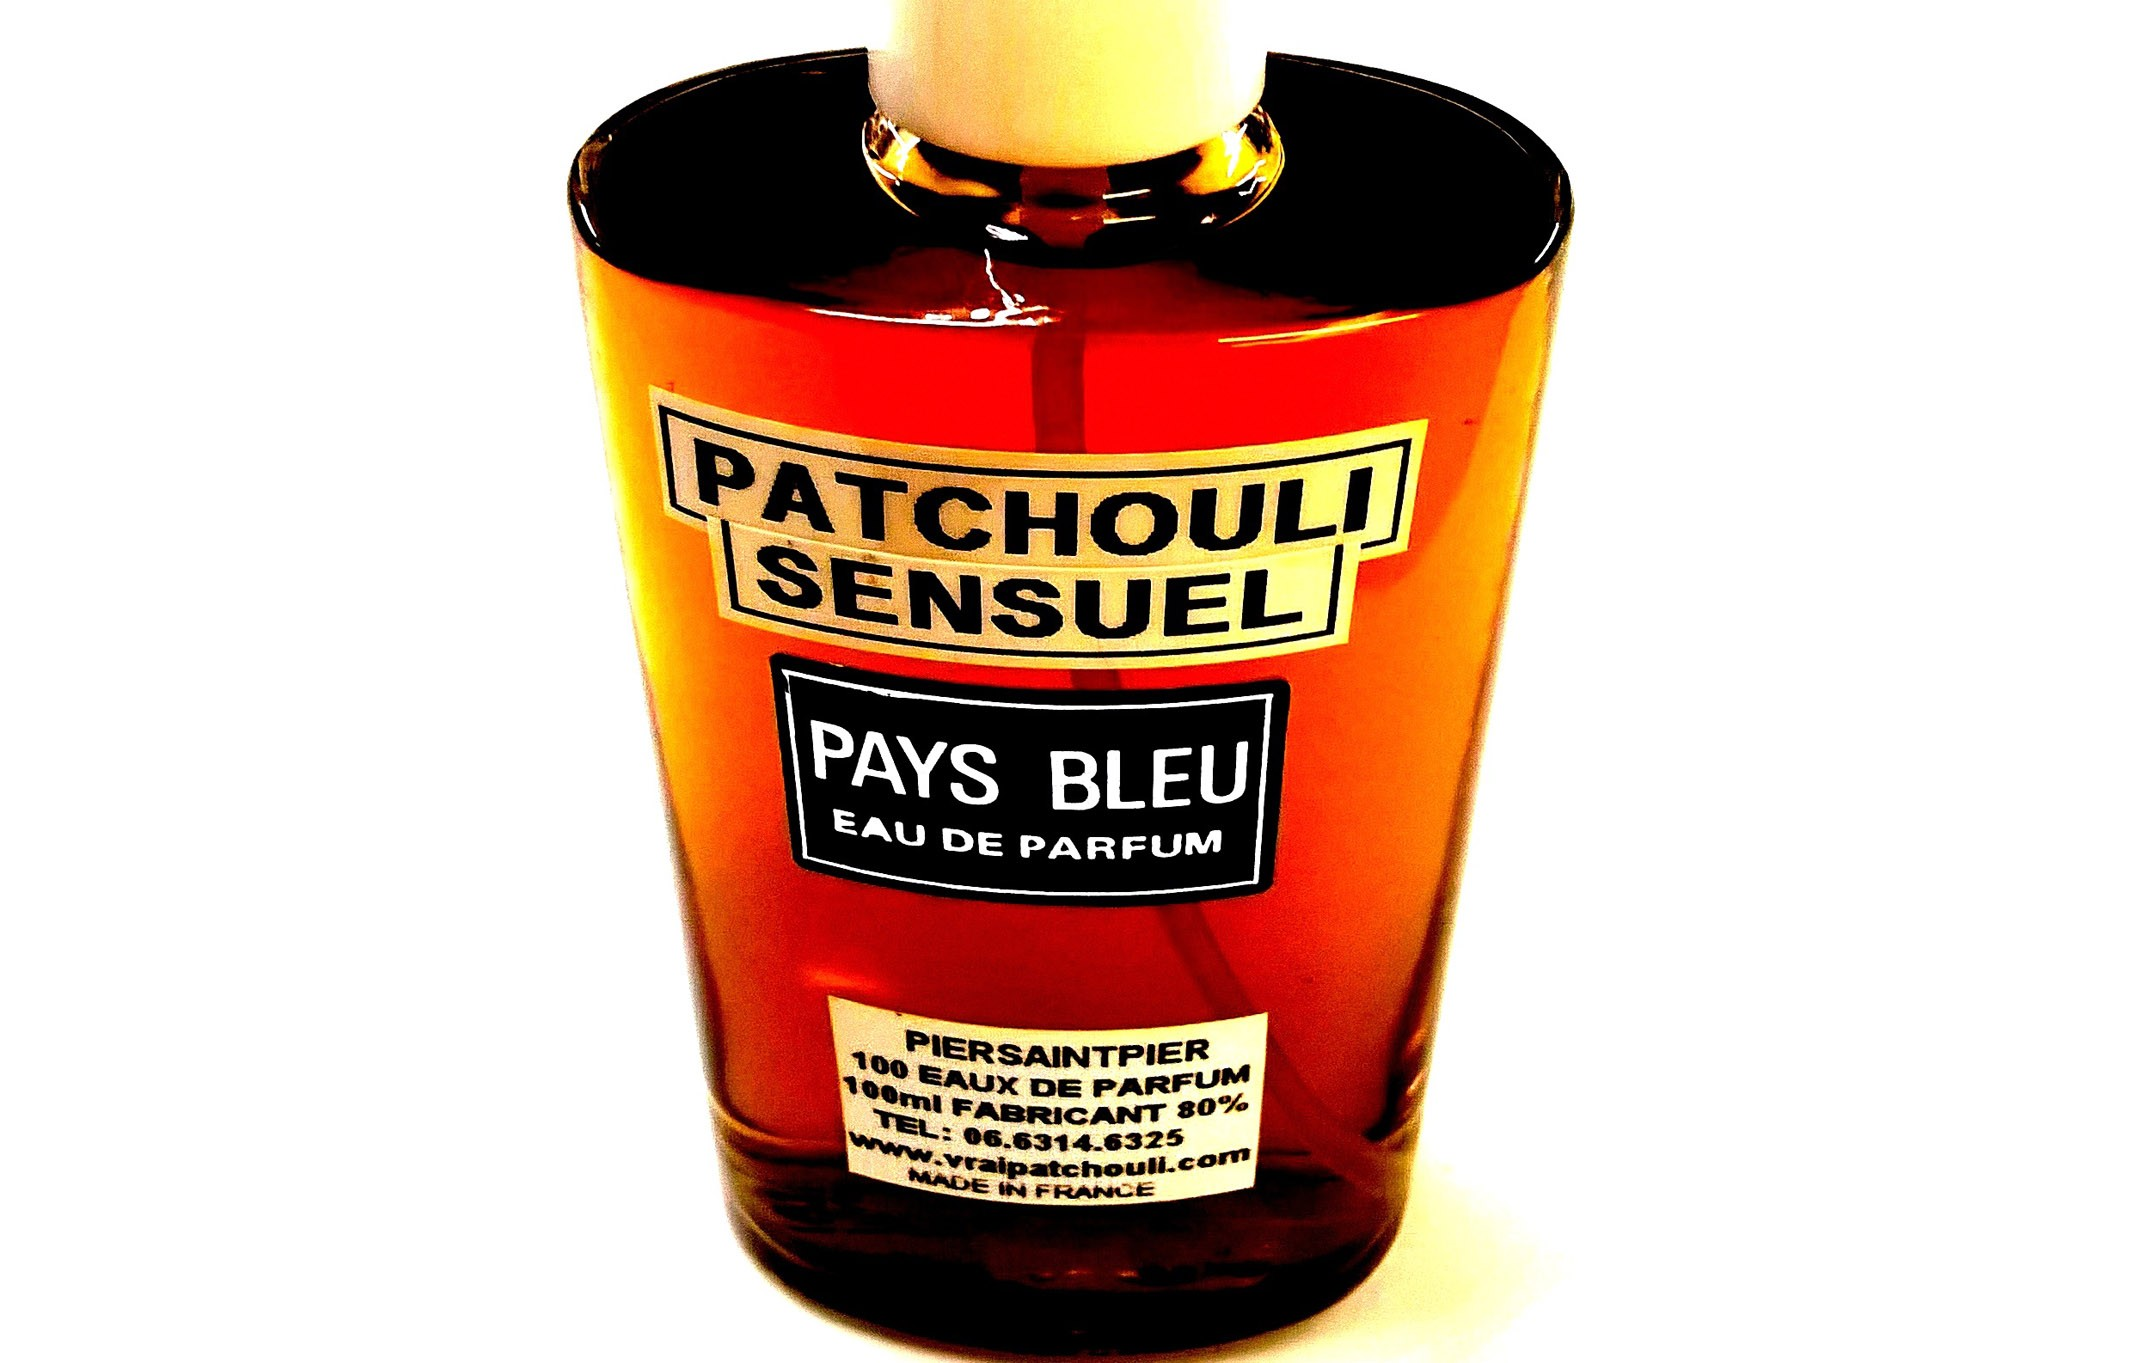 PATCHOULI SENSUEL (Flacon Simple / Sans Boite)